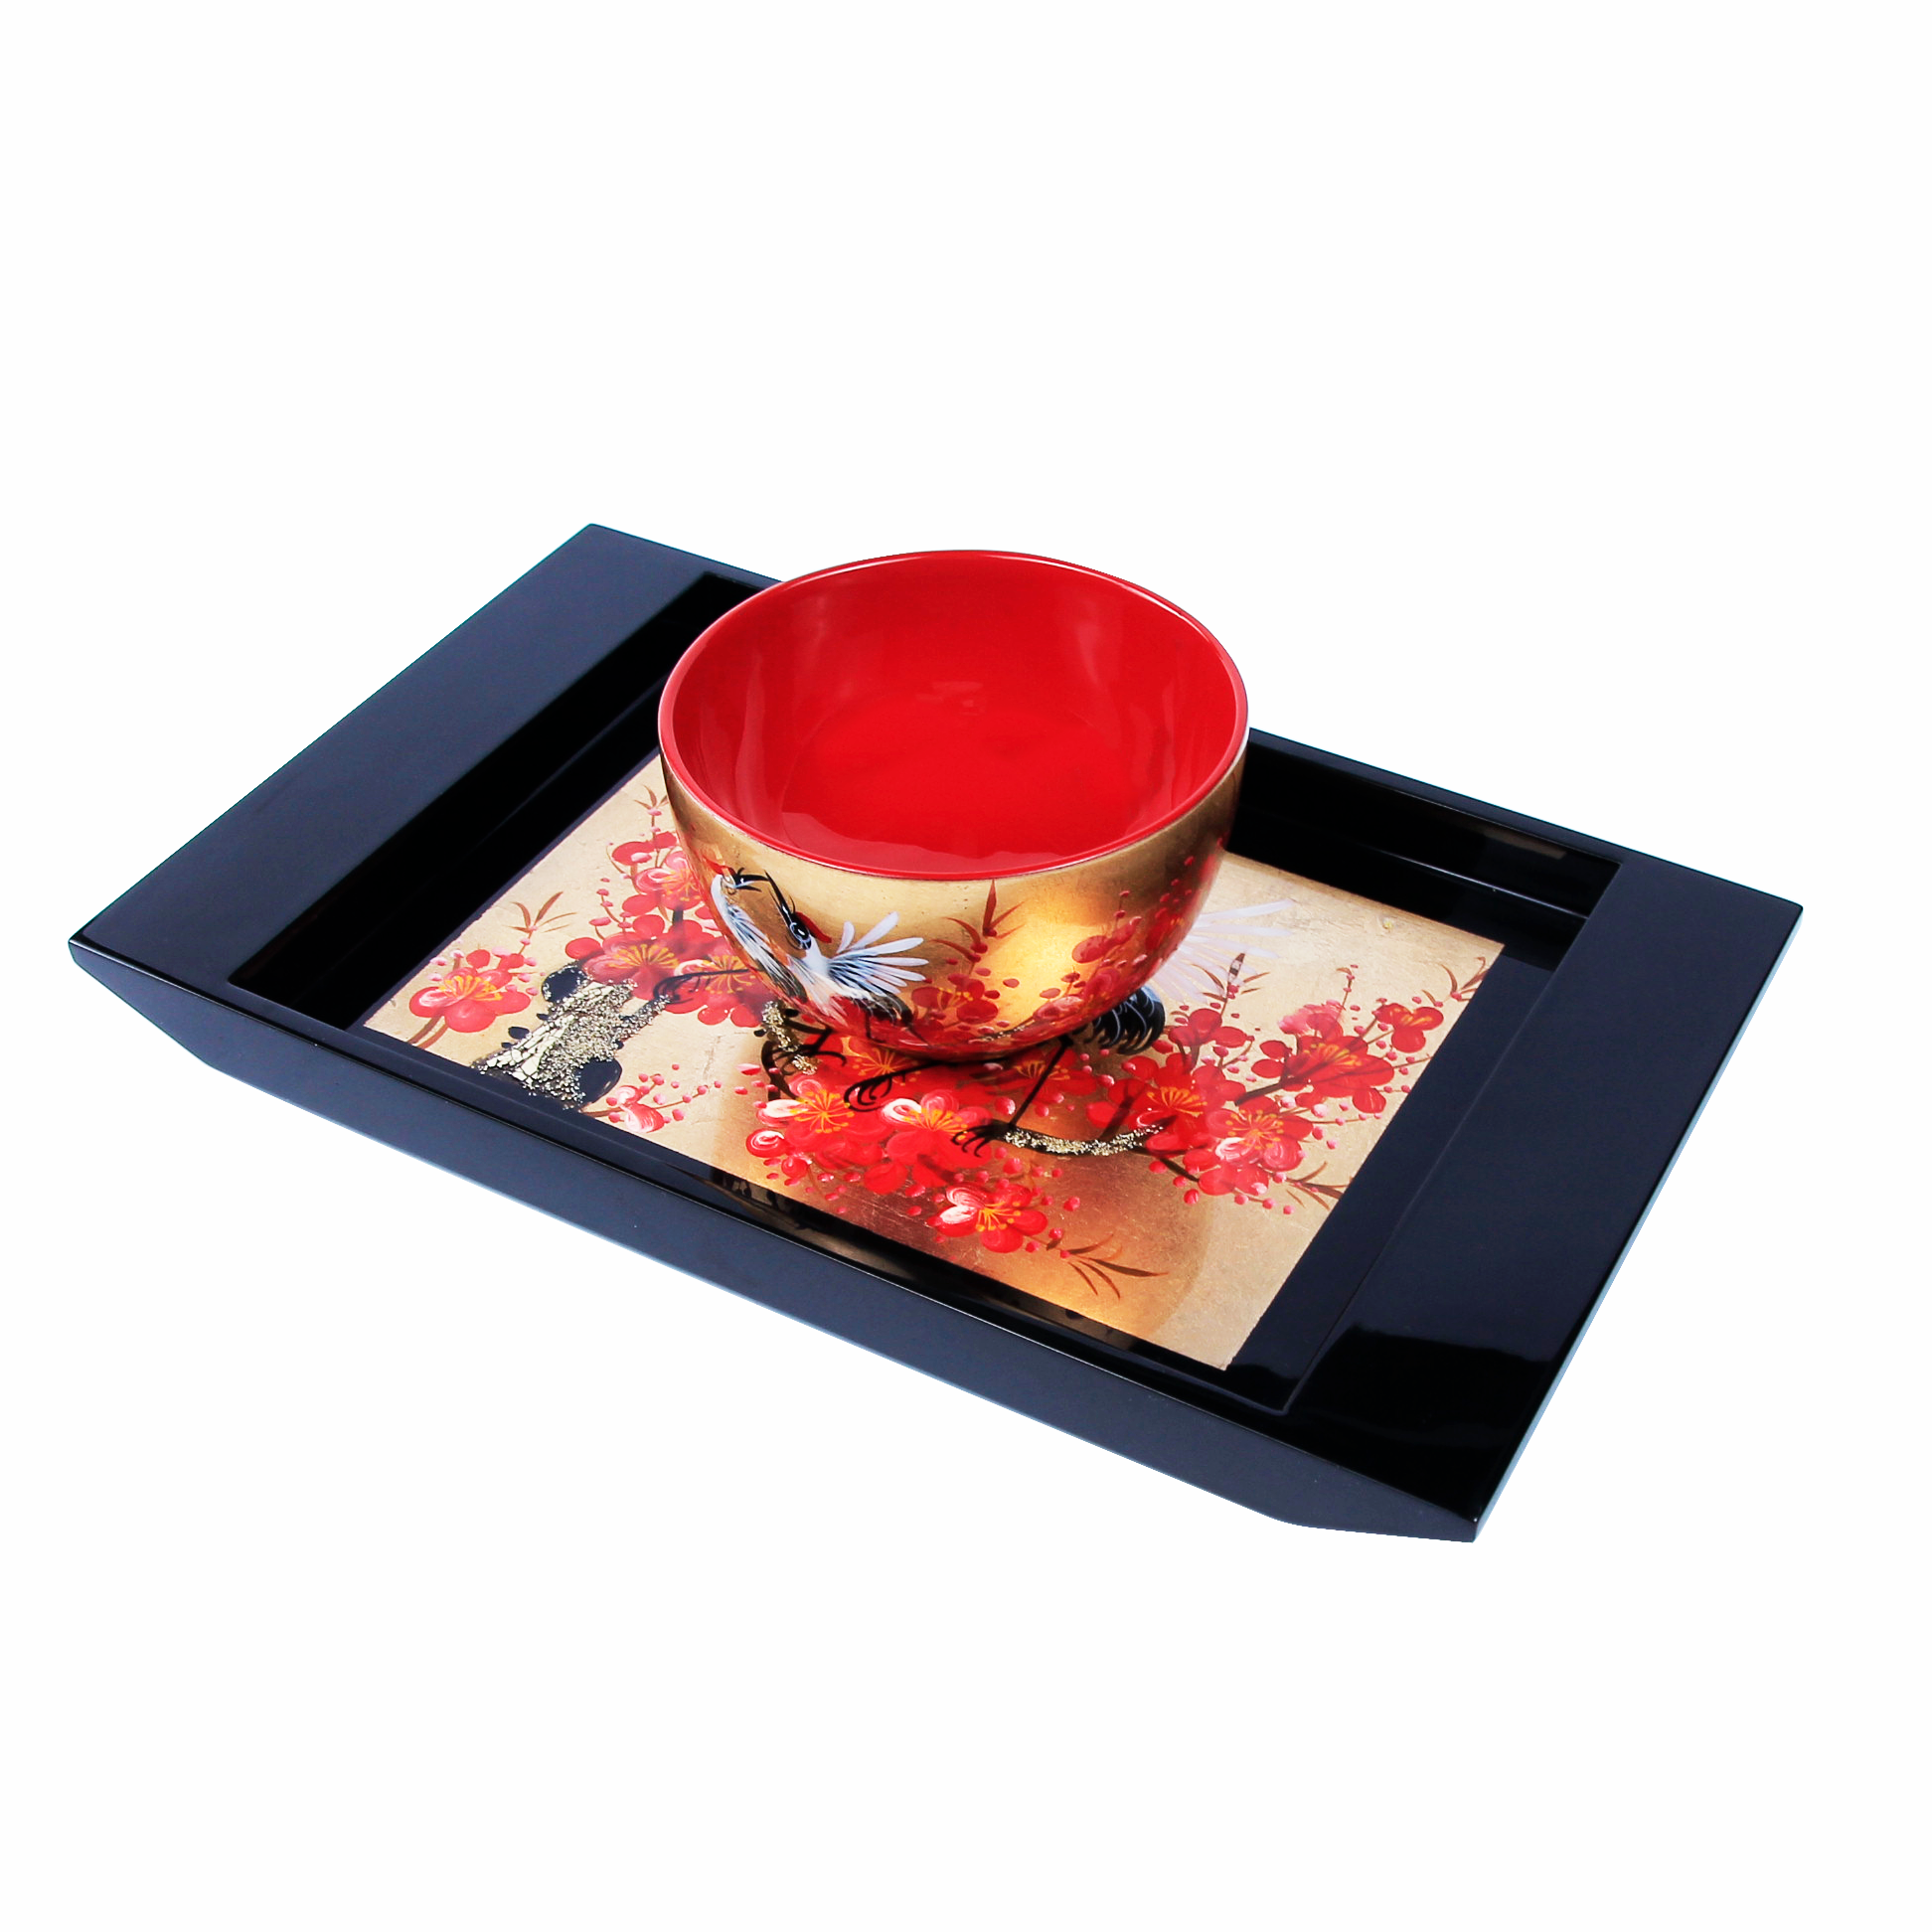 Modern Design Durable Cheap Custom Dessert Cake Sushi Appetizer Snack Wooden Lacquer Serving Plates